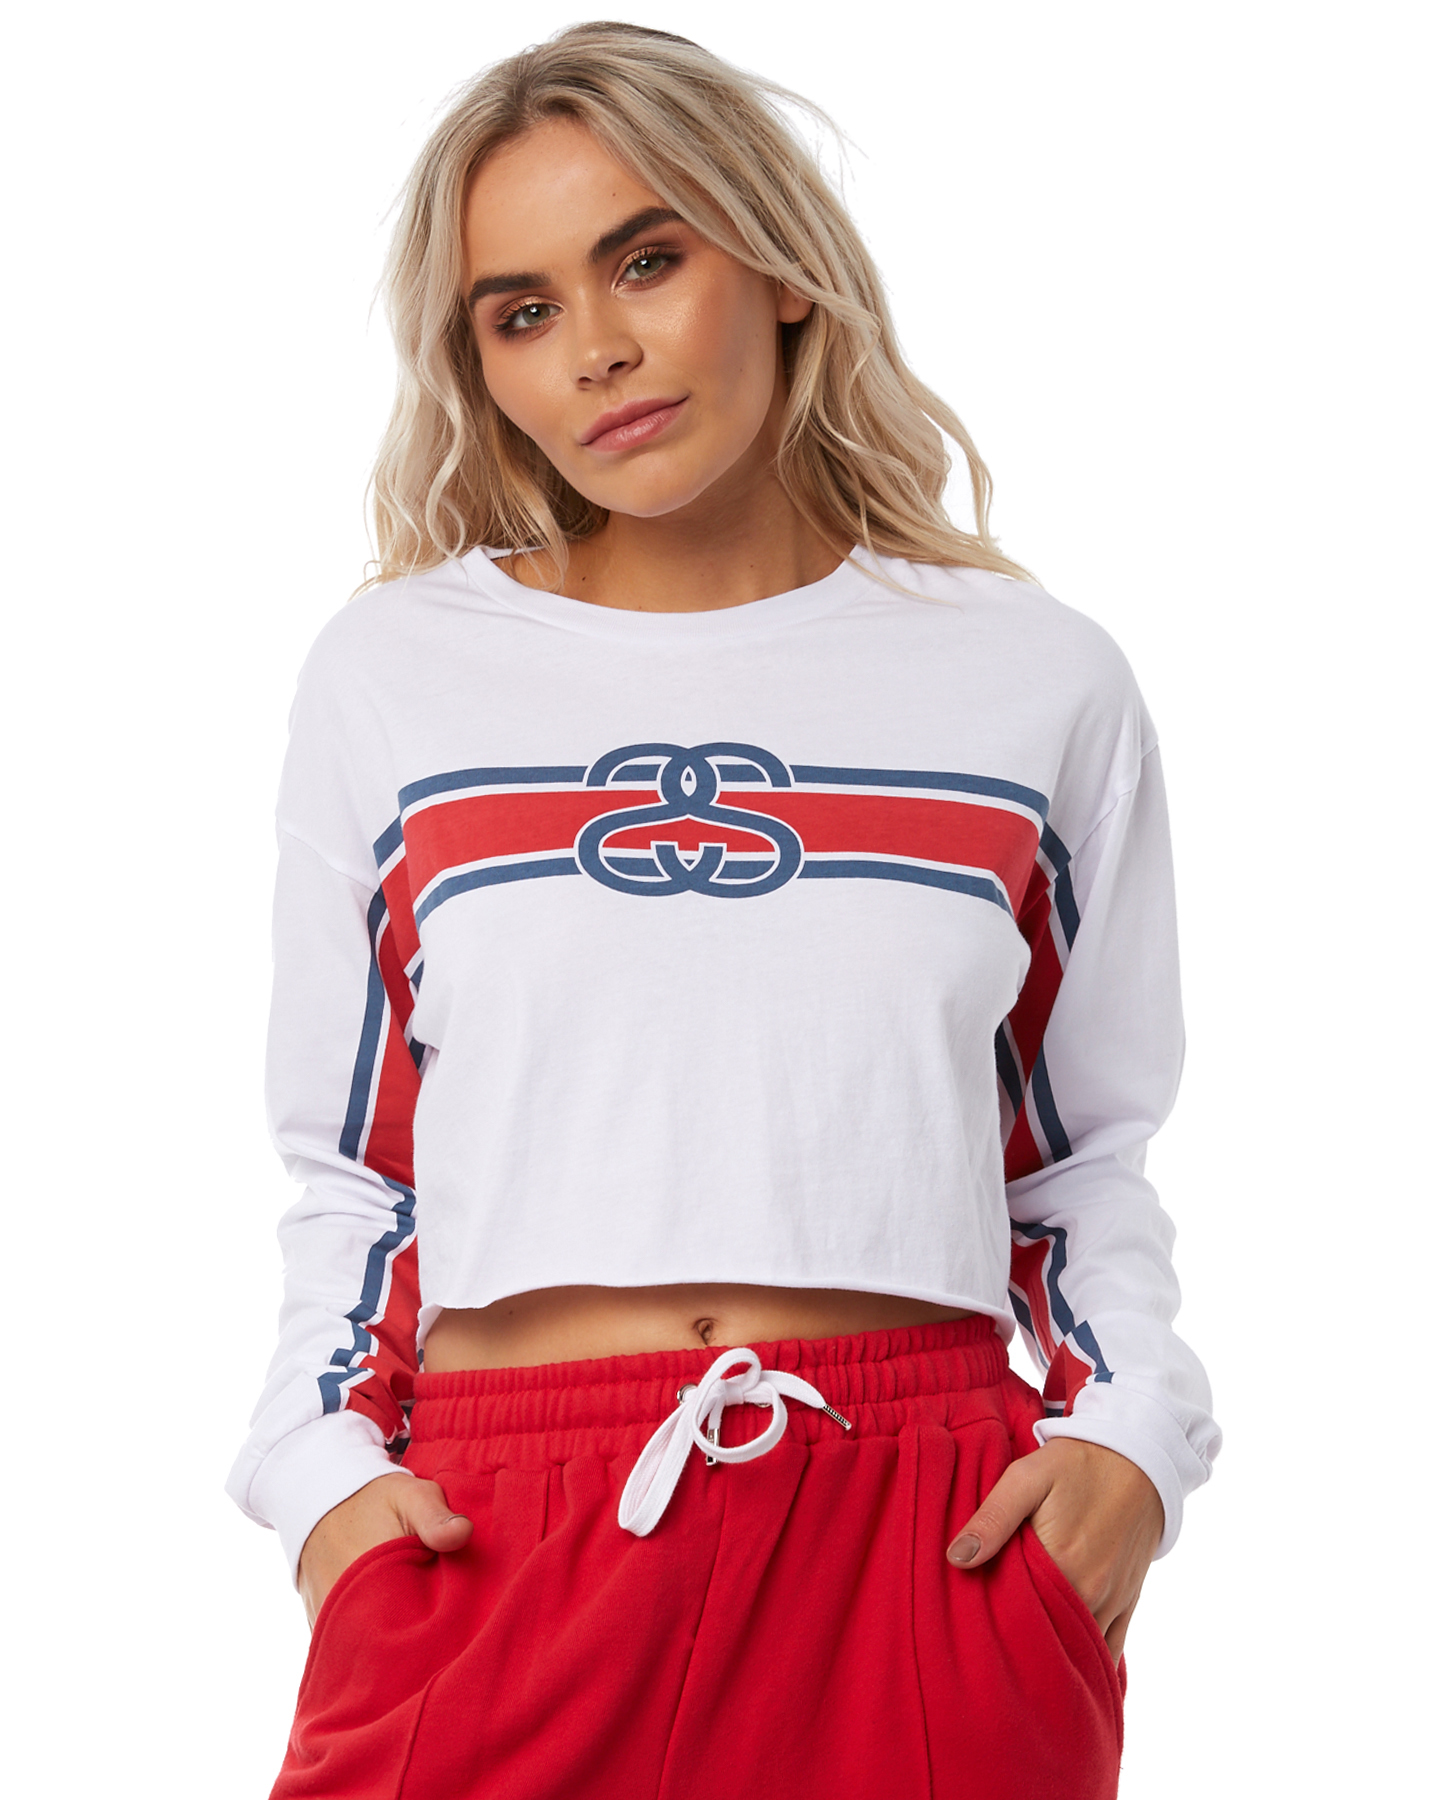 98a8801dd3d Details about Stussy Women s Tracks Crop Ls Tee Crew Neck Long Sleeve  Cotton White